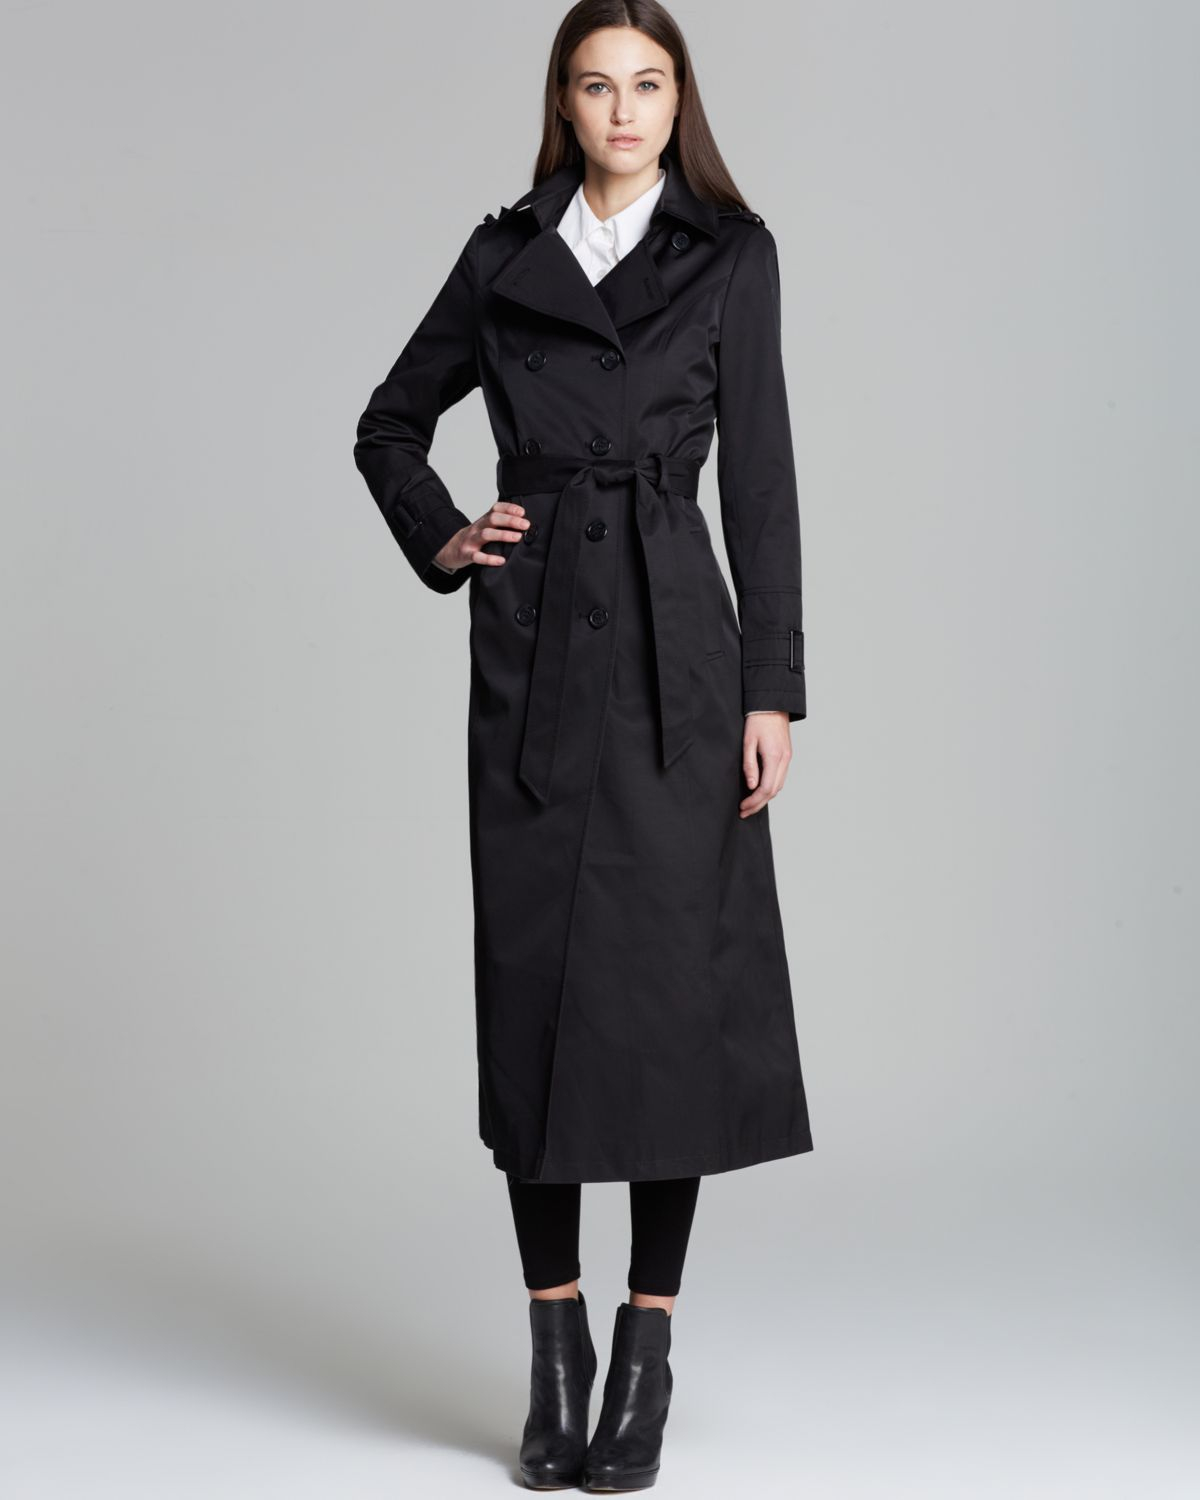 aesthetic appearance new selection hot-selling cheap DKNY Lea Maxi Trench Coat in Black - Lyst